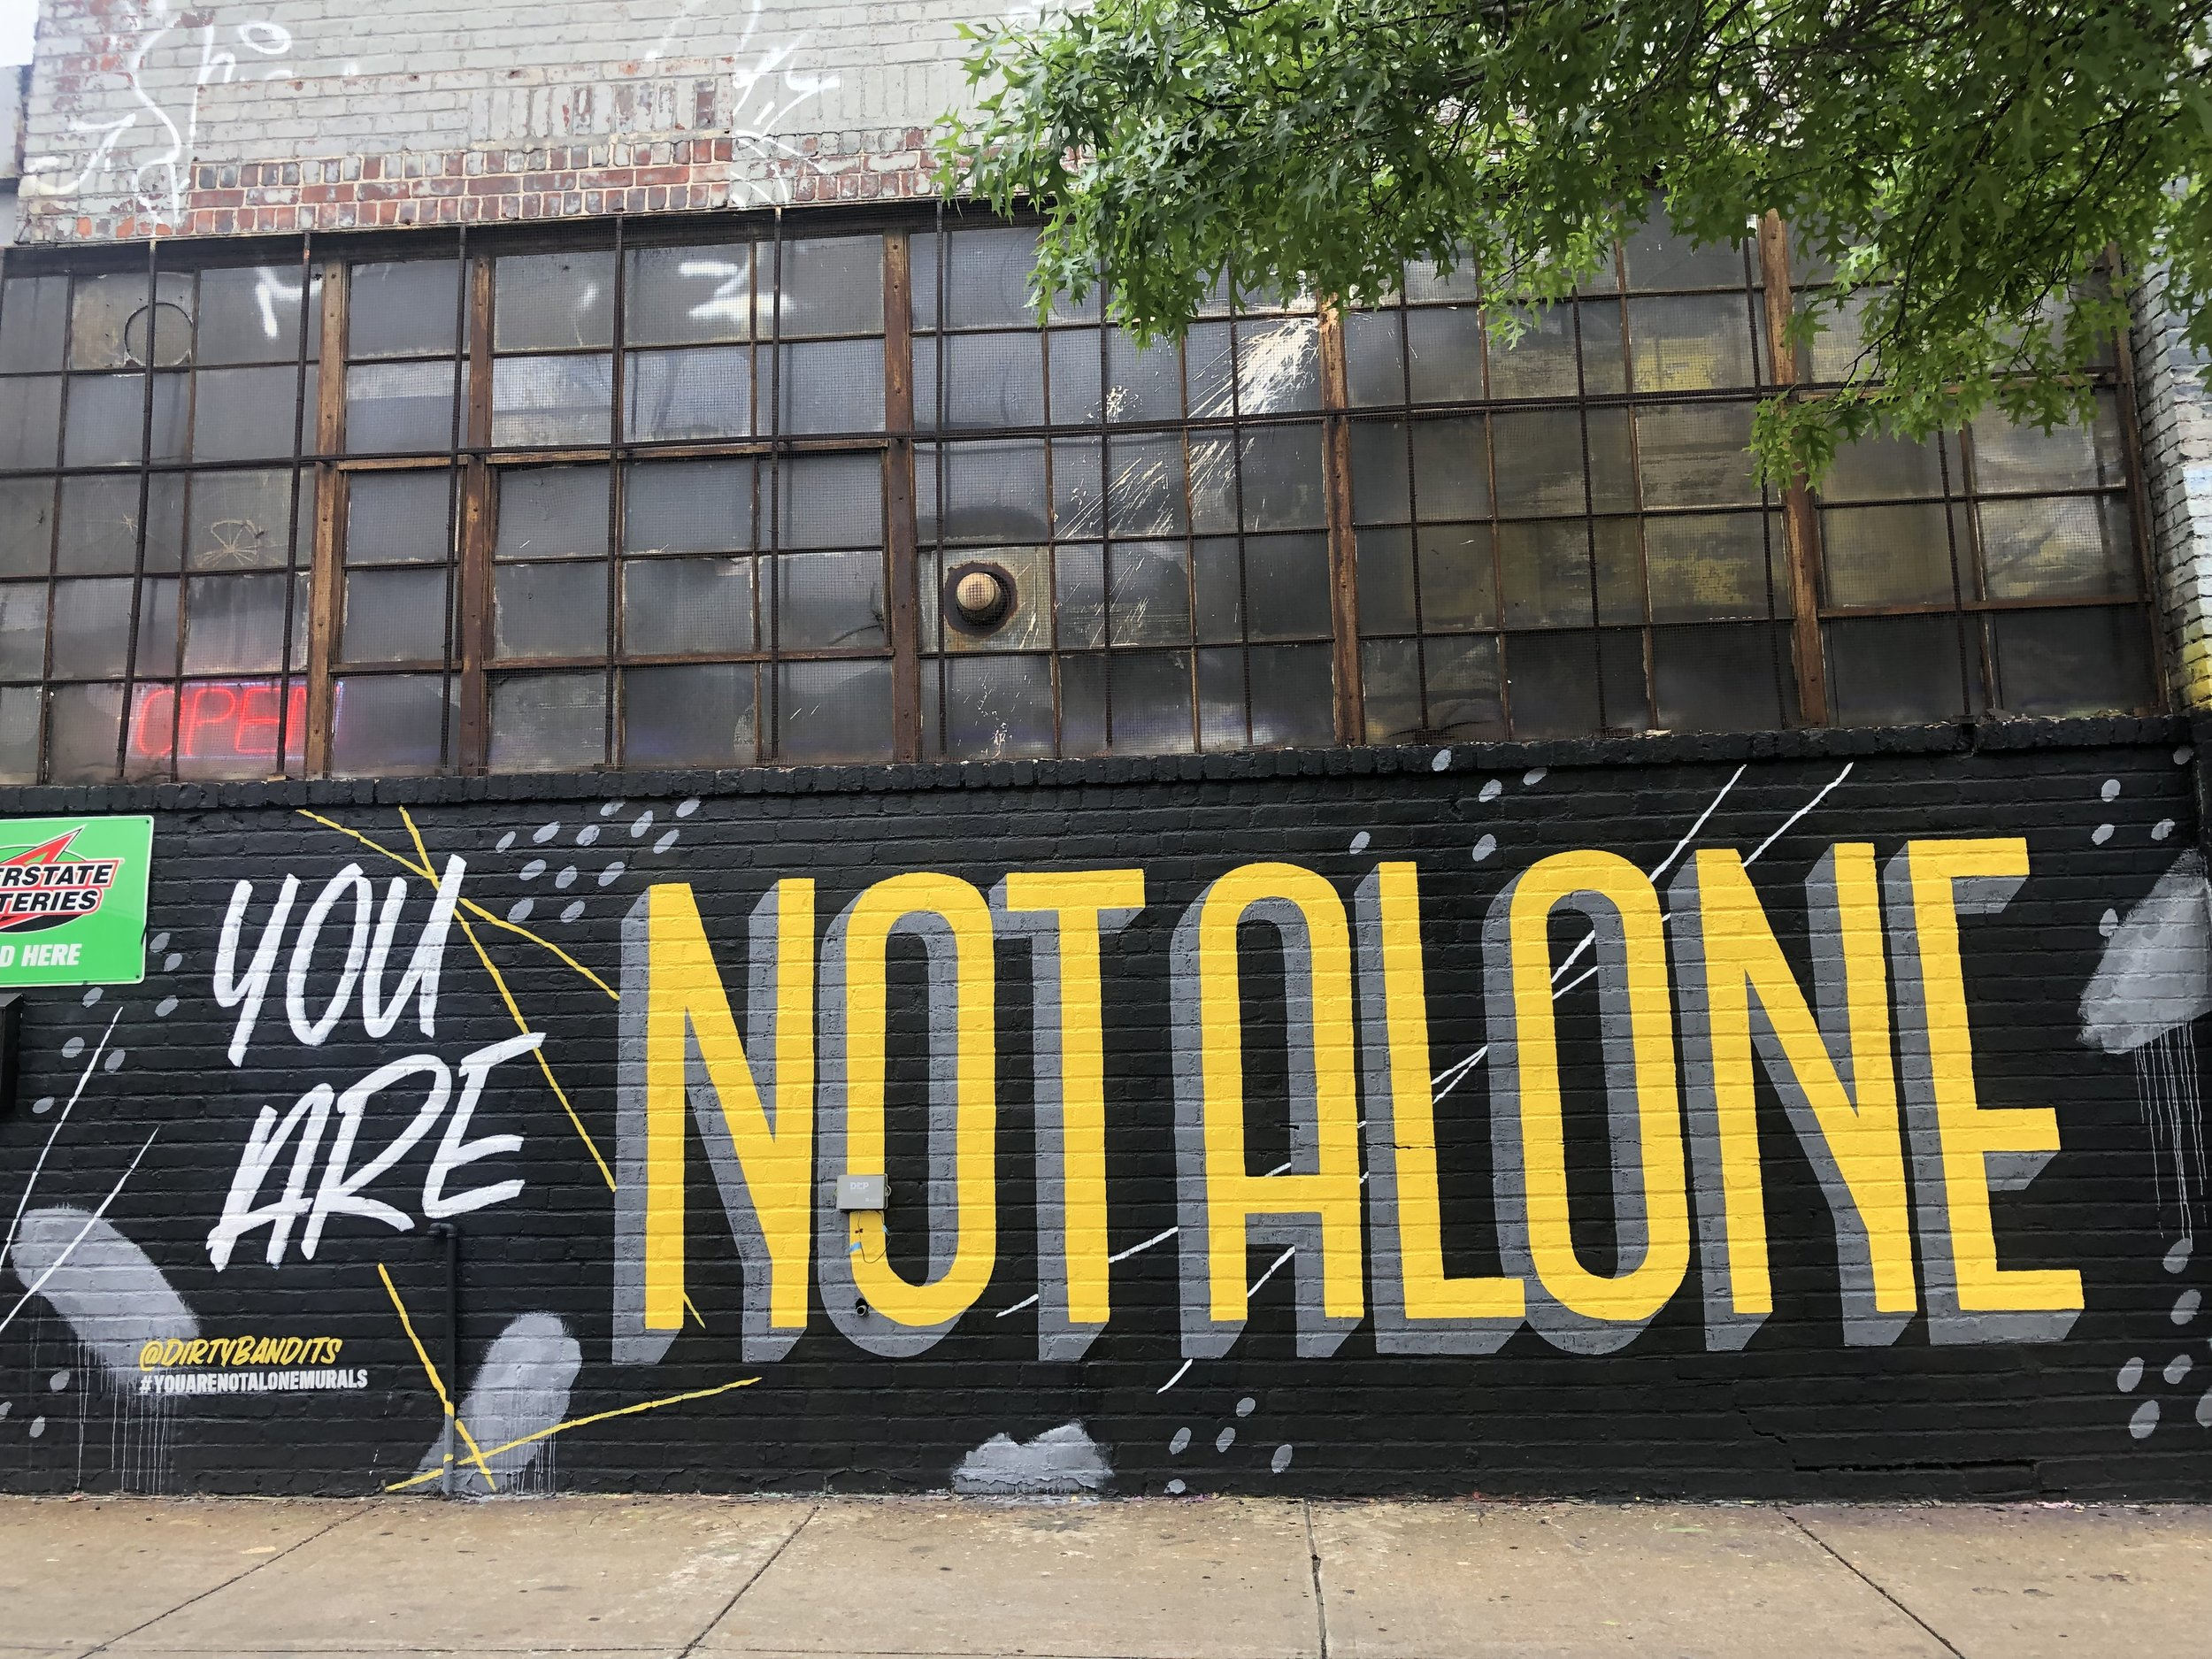 You Are Not Alone mural in Greenpoint, Brooklyn by Dirty Bandits.